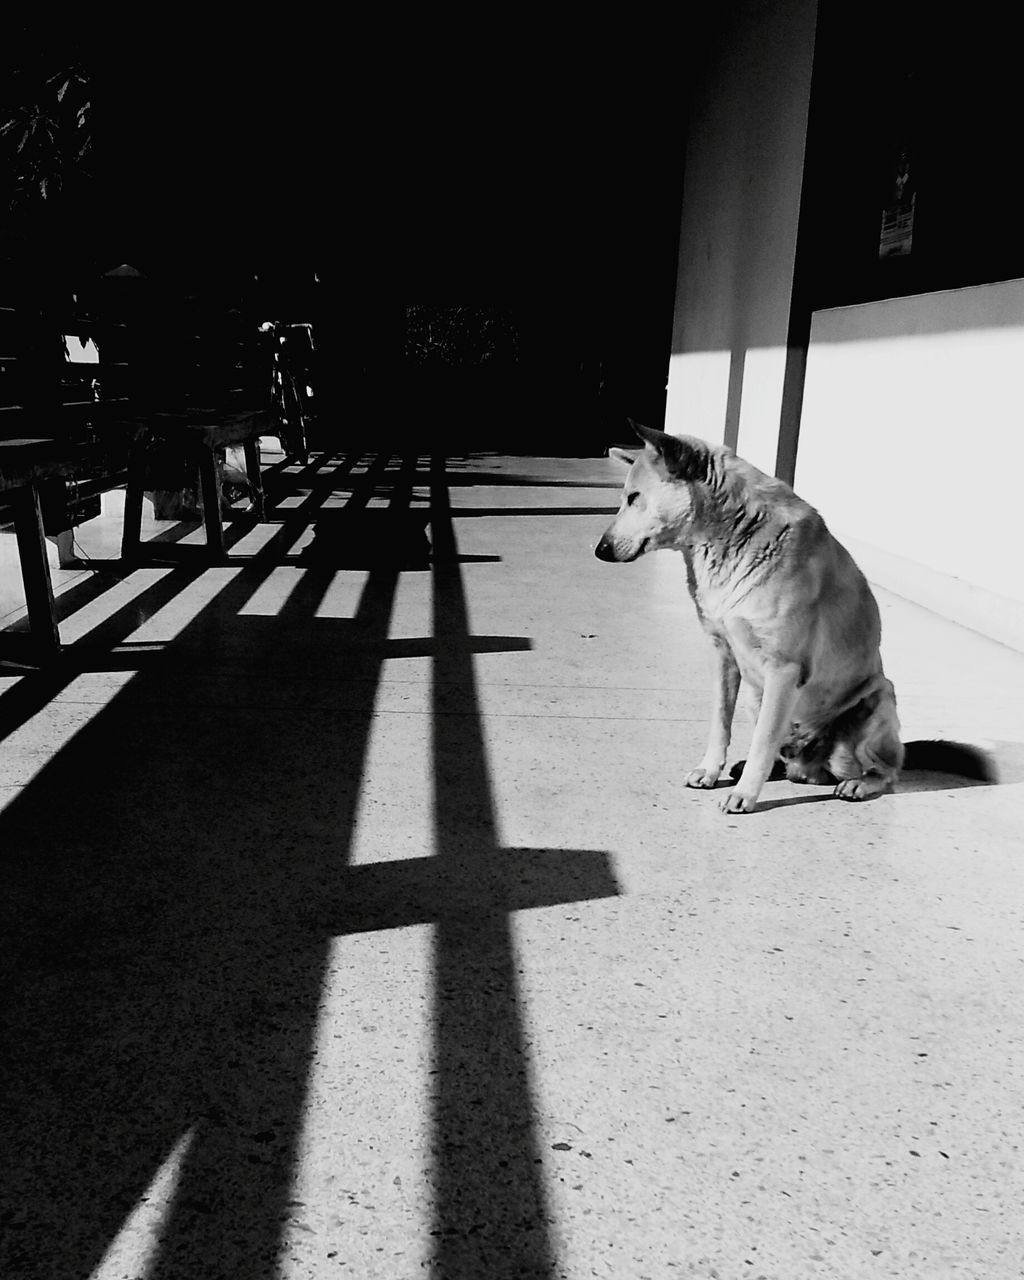 pets, animal themes, domestic animals, one animal, mammal, shadow, sunlight, domestic cat, dog, feline, day, no people, sitting, outdoors